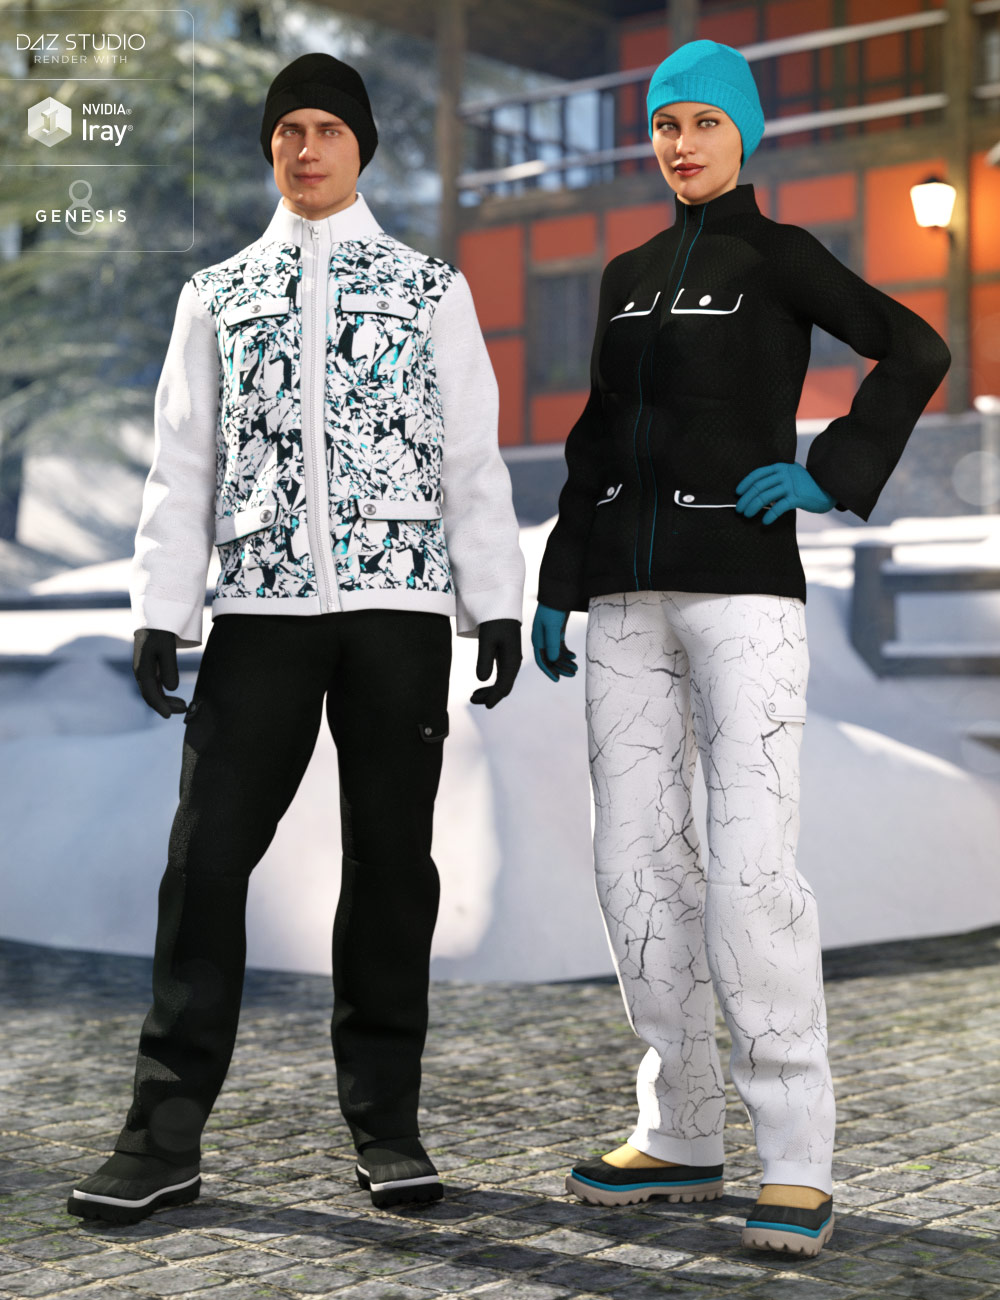 dForce Winter Snow Outfit for Genesis 8 Male(s) and Female(s) by: DirtyFairyNikisatez, 3D Models by Daz 3D